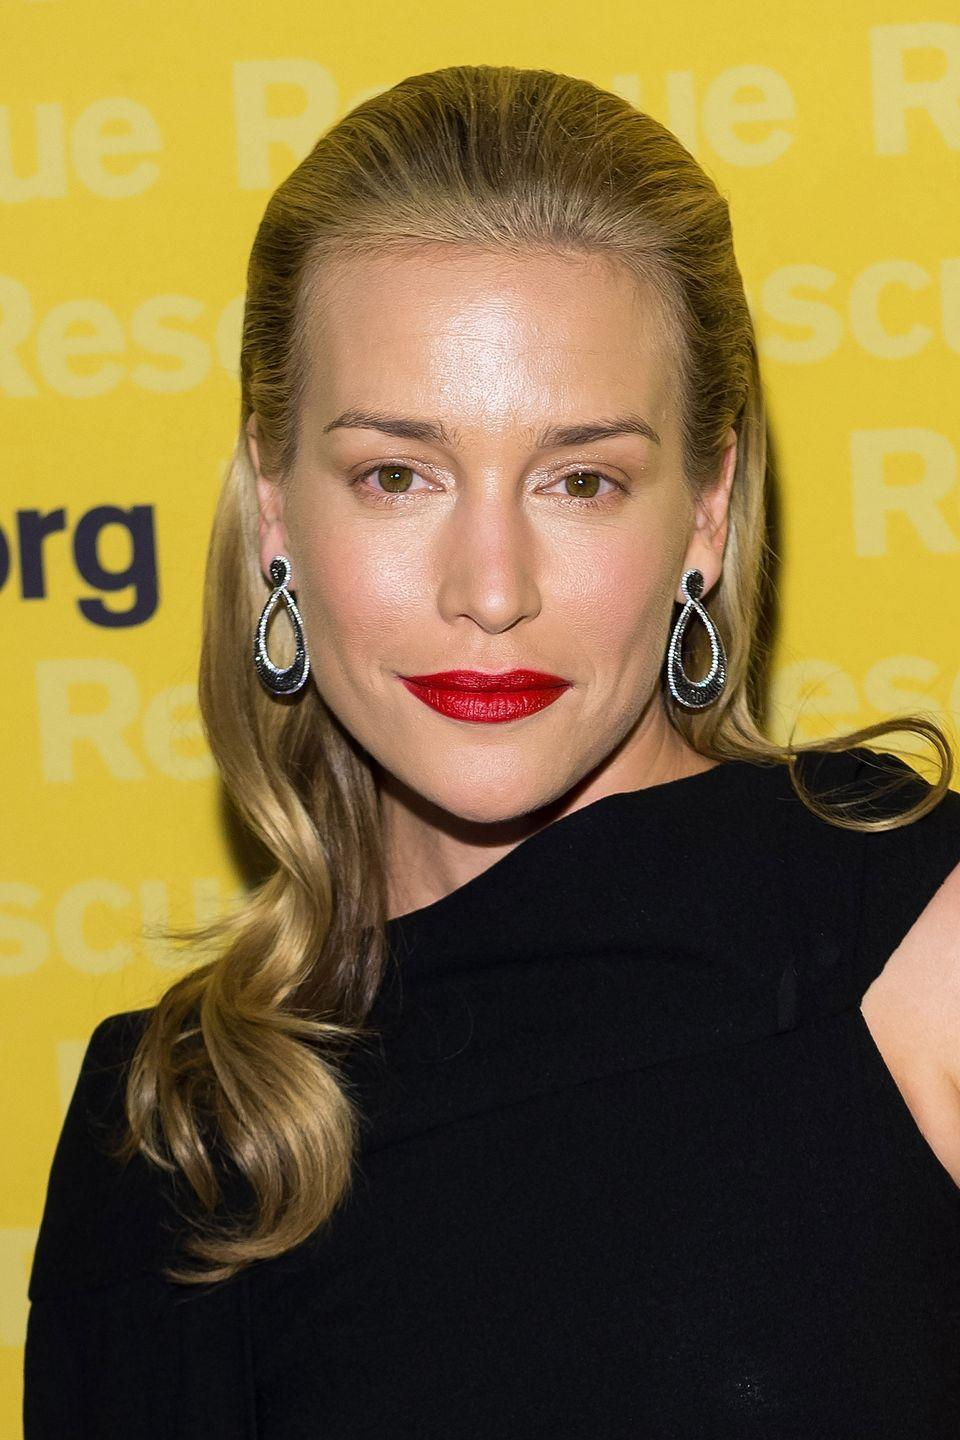 "<p>To many of us, she'll always be Violet ""<em>Coyote Ugly</em>"" Sanford. But in recent years, she's also starred in TV series <em>Covert Affairs</em> and popped up in that strange Bruce Willis/Joseph Gordon Levitt movie <em>Looper</em>. She also likes to share photos of flowers on <a href=""https://instagram.com/realpiperperabo/"" rel=""nofollow noopener"" target=""_blank"" data-ylk=""slk:Instagram"" class=""link rapid-noclick-resp"">Instagram</a>.</p>"